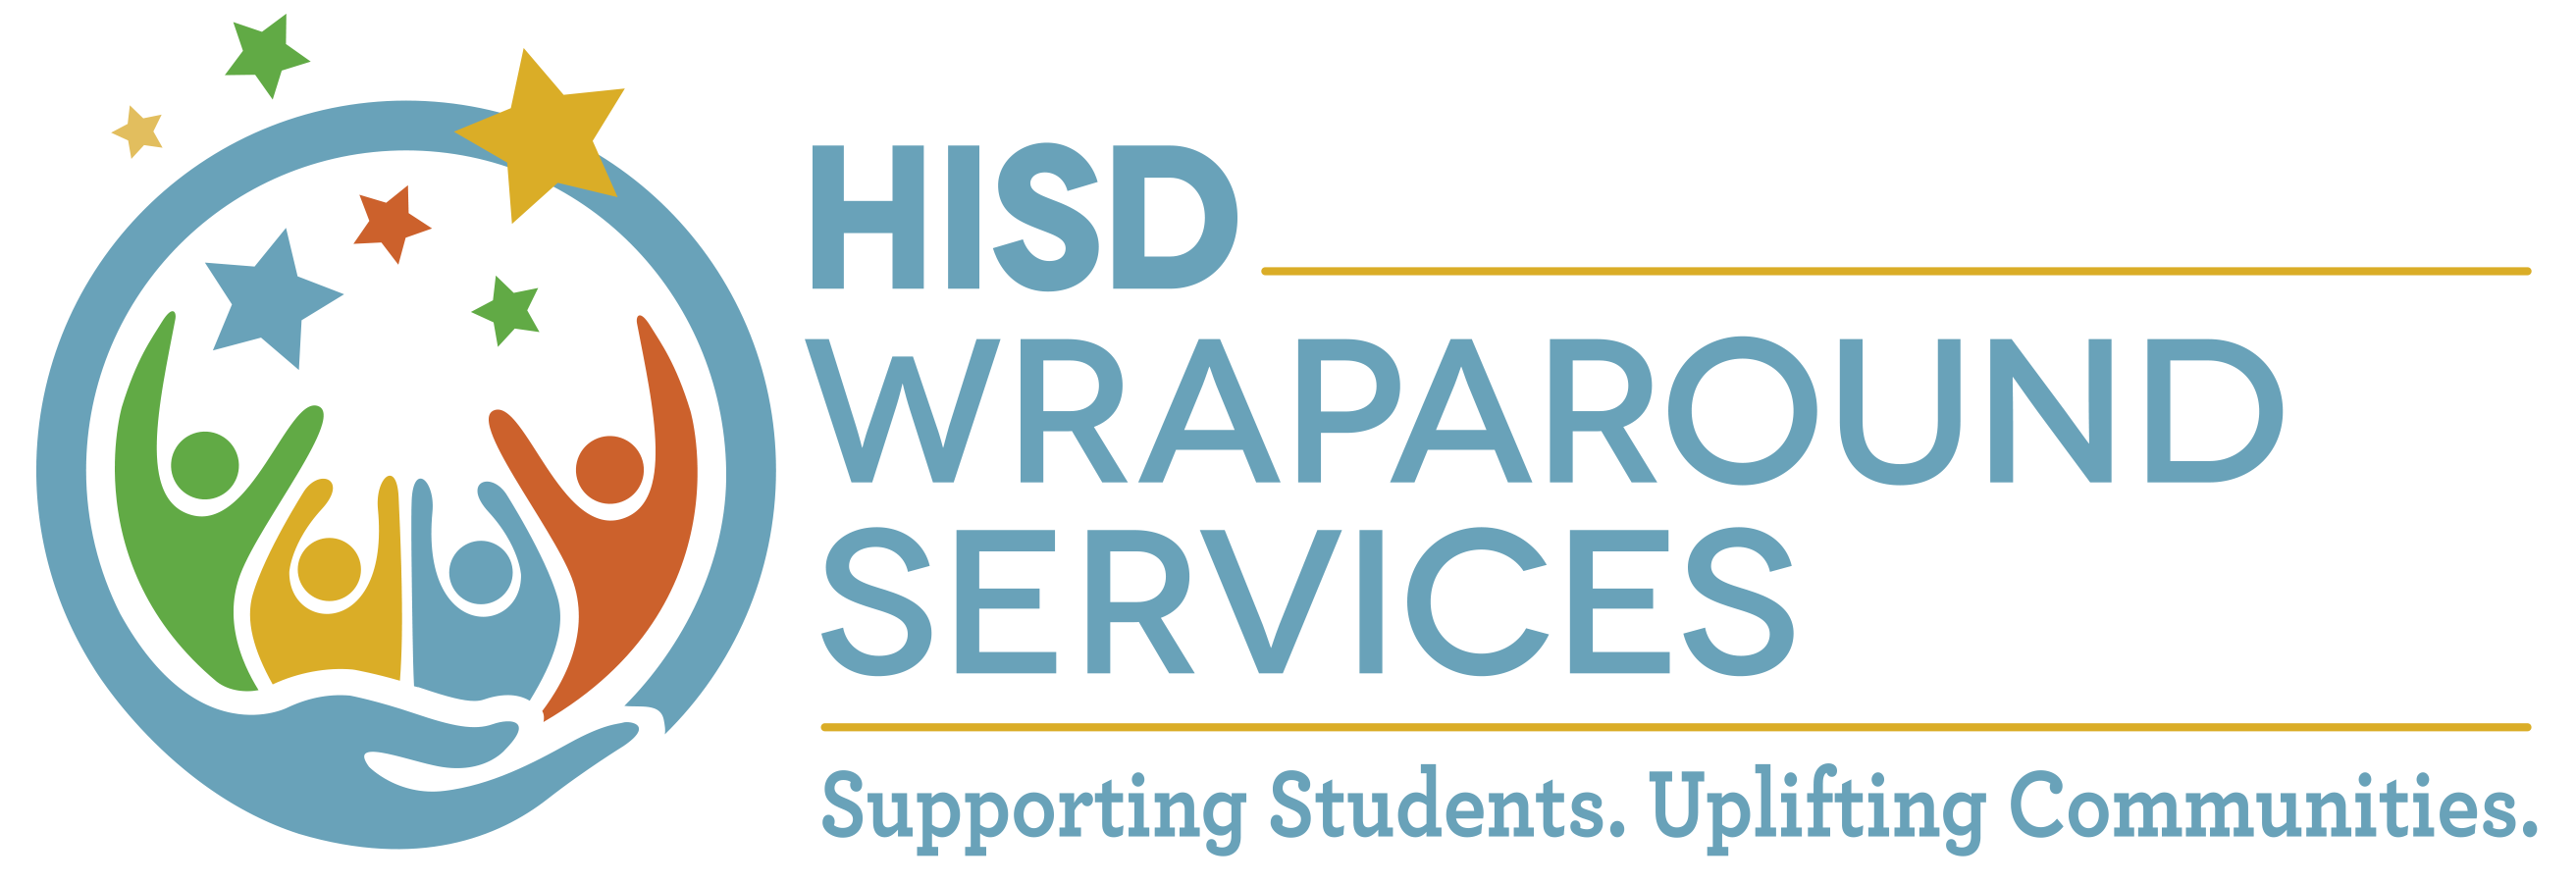 Wraparound Services Logo. Supporting Students. Uplifting Communities.